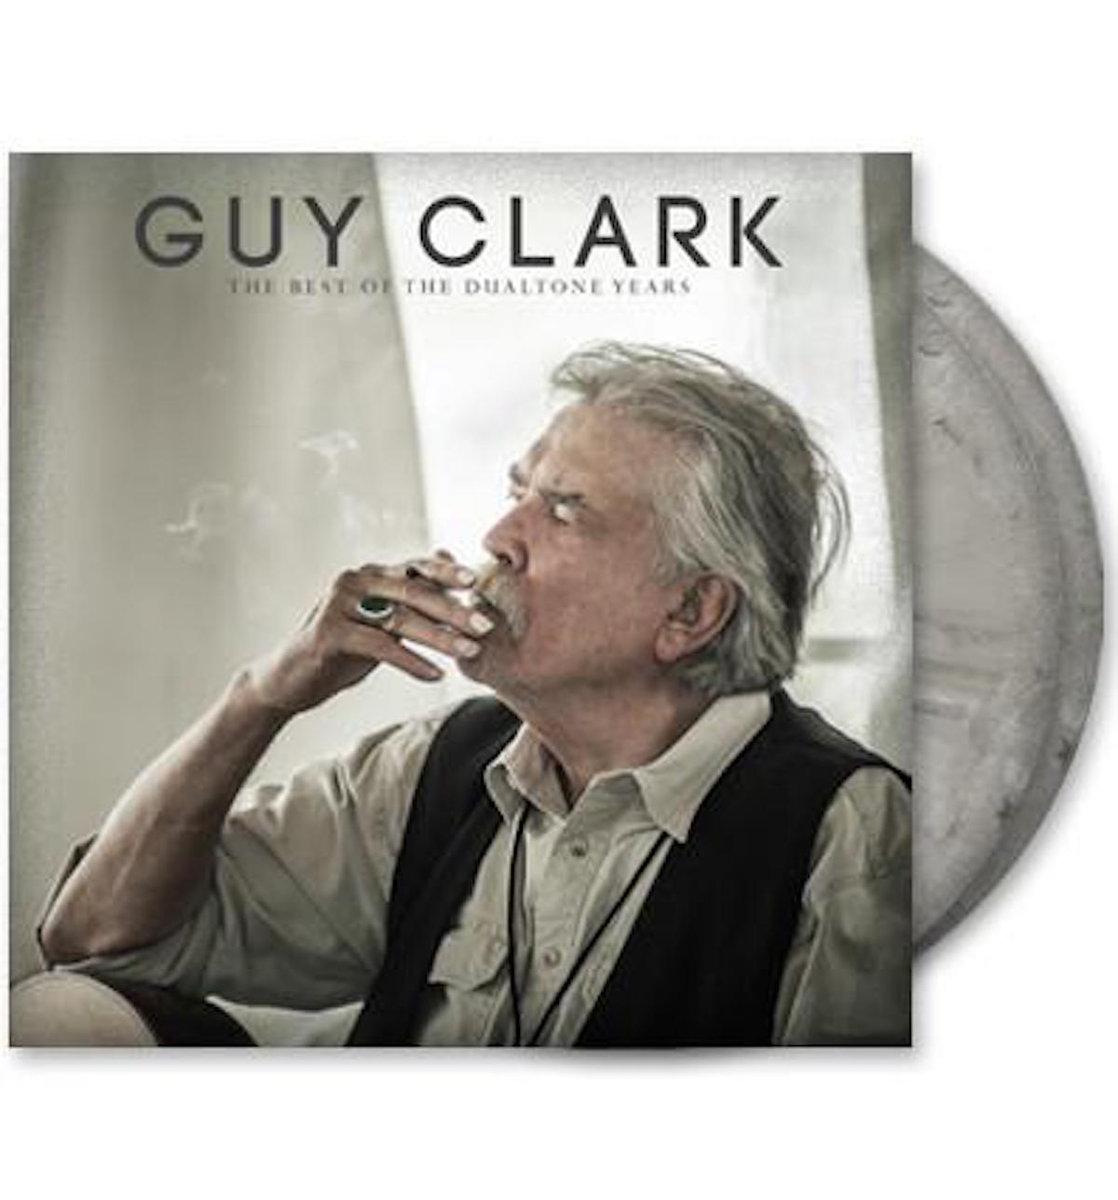 Guy Clark – The Best of the Dualtone Years (CD)